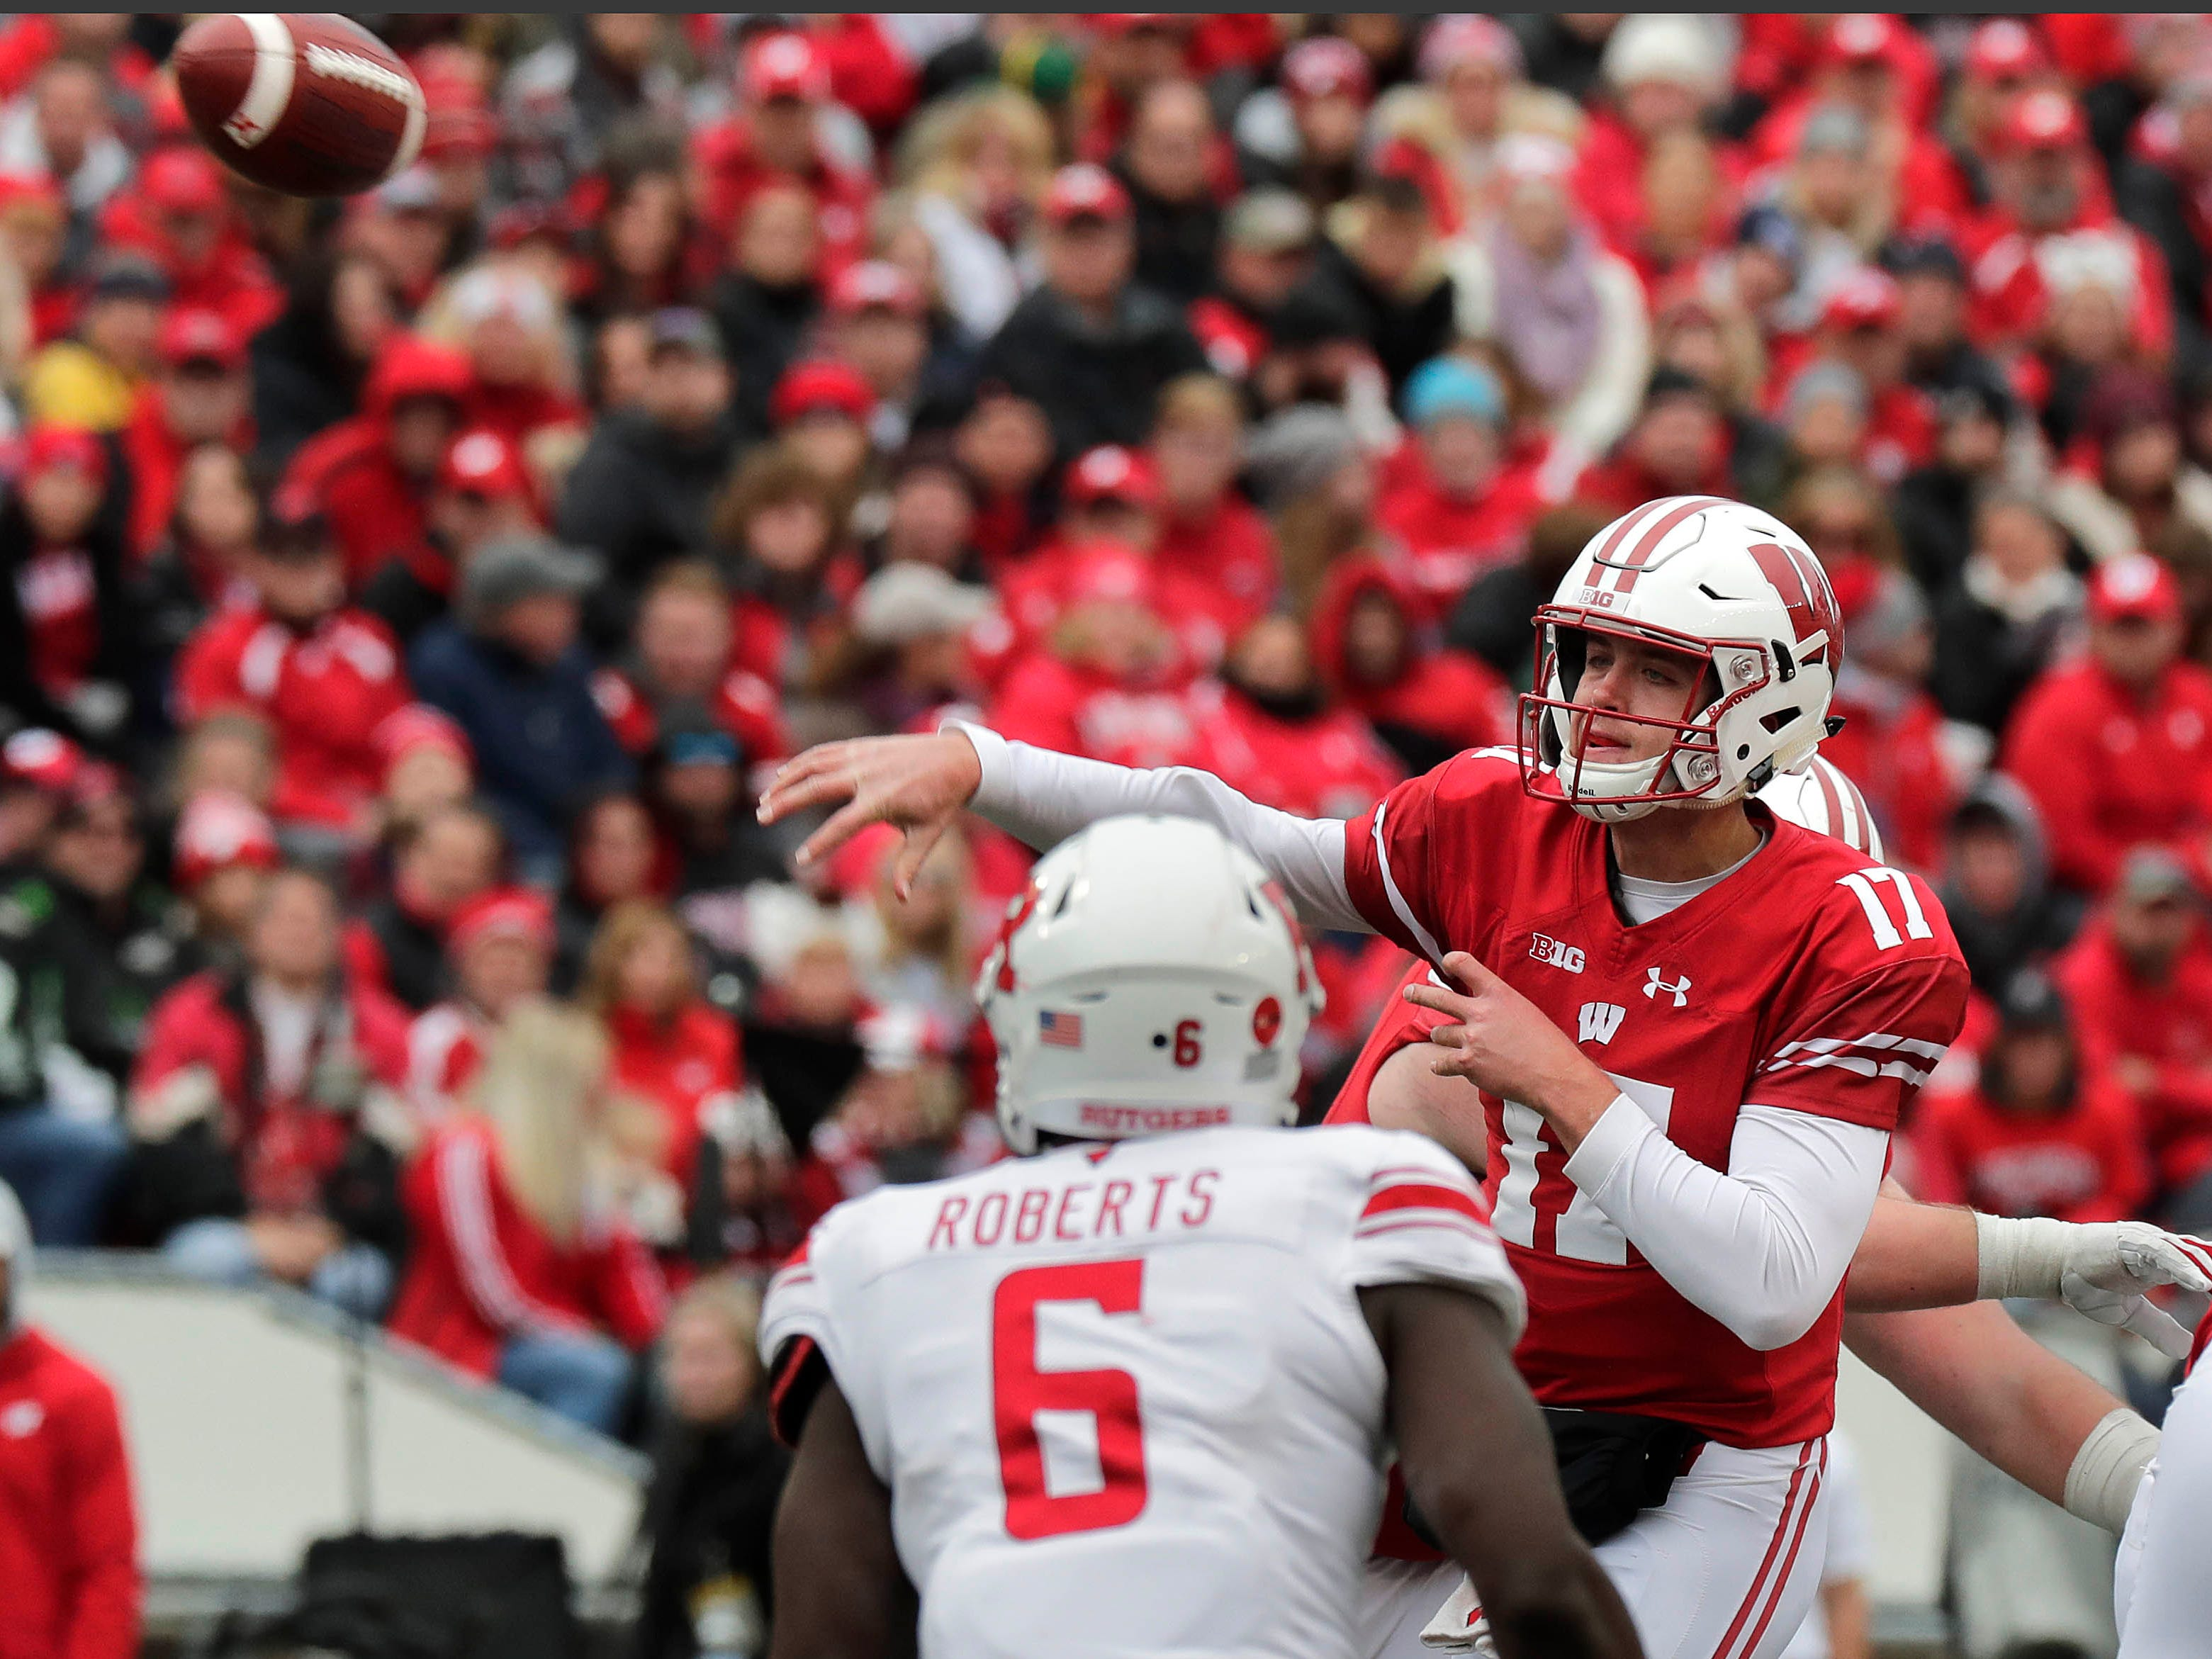 UW quarterback Jack Coan completes a pass against Rutgers during the second half on Saturday.